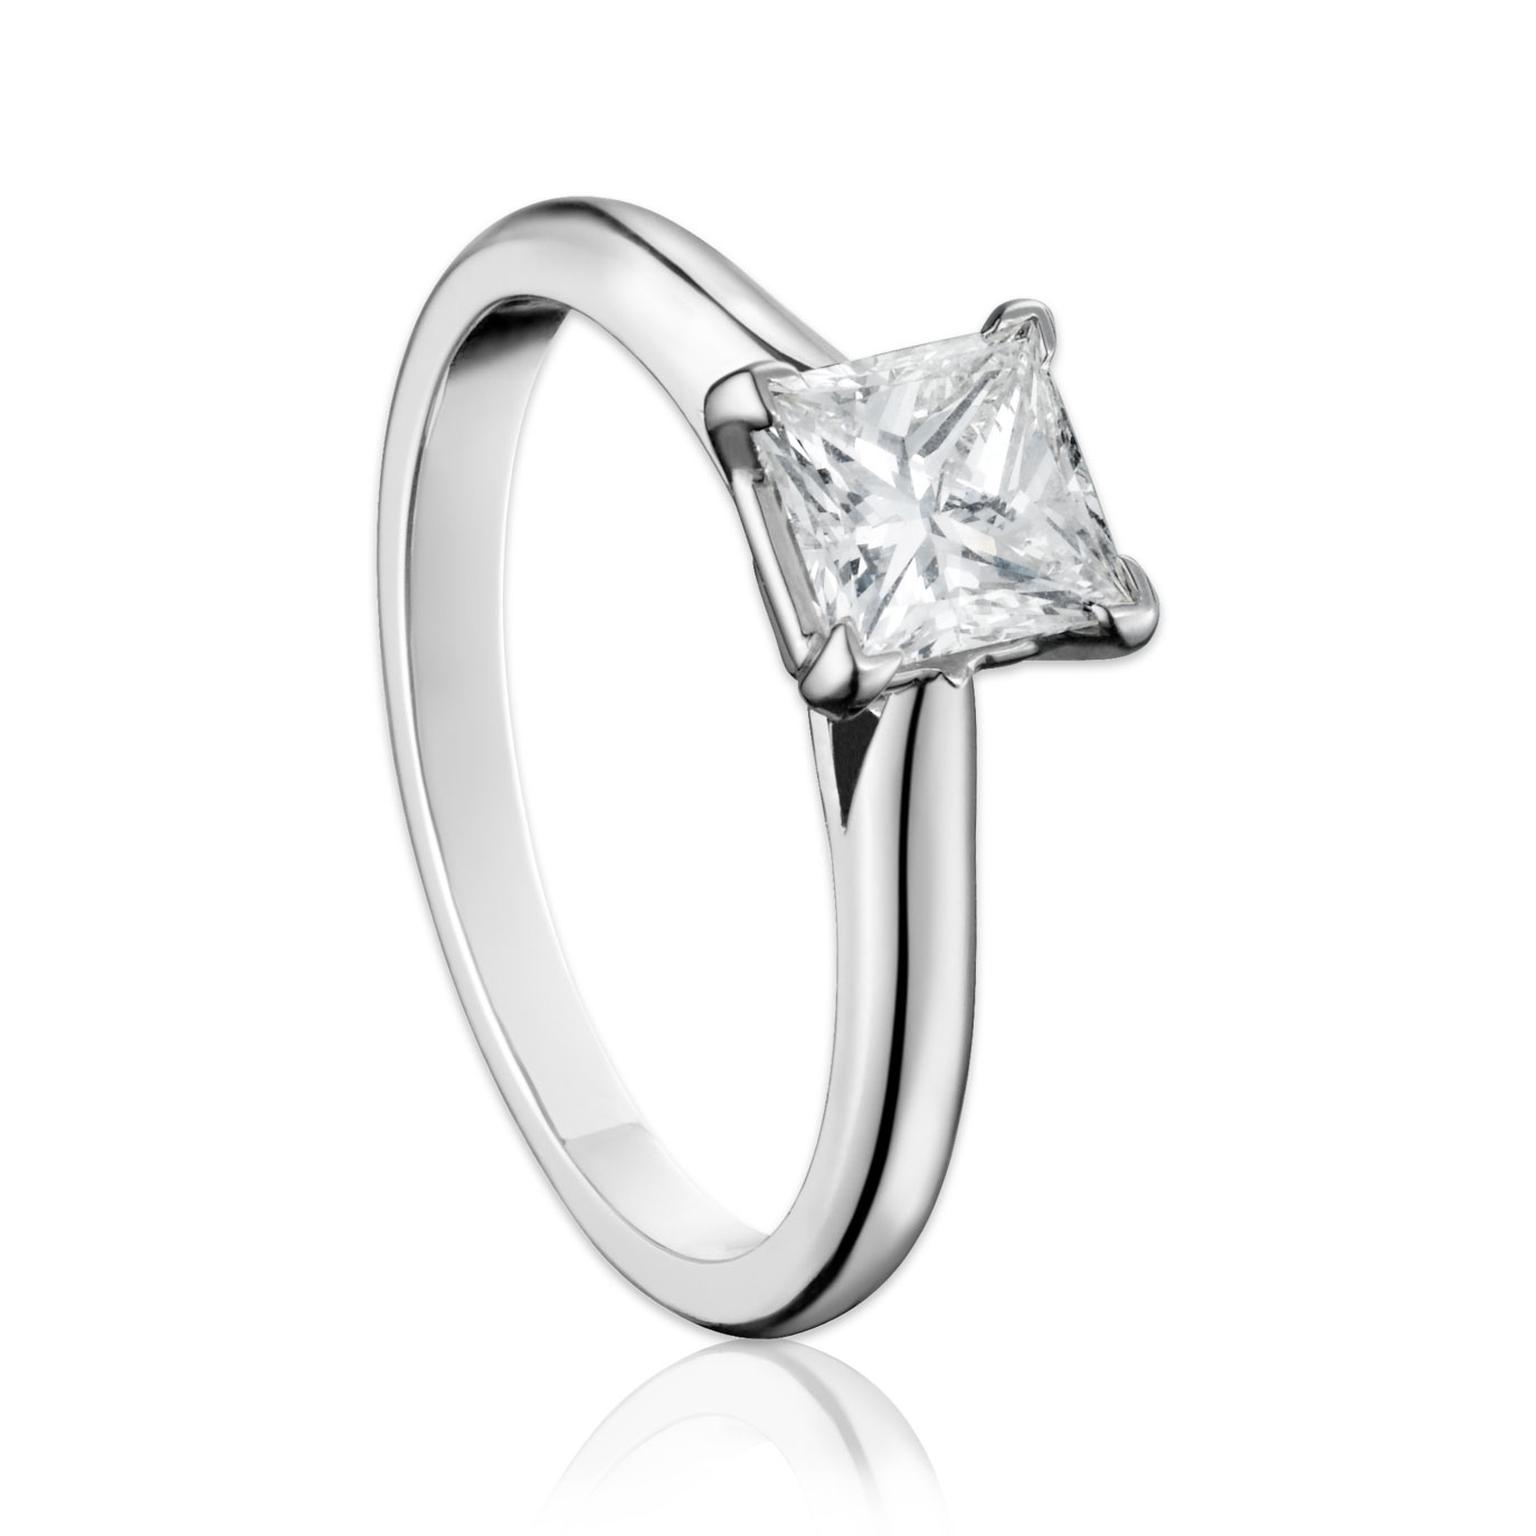 Cartier Solitaire 1895 princess-cut engagment ring in platinum